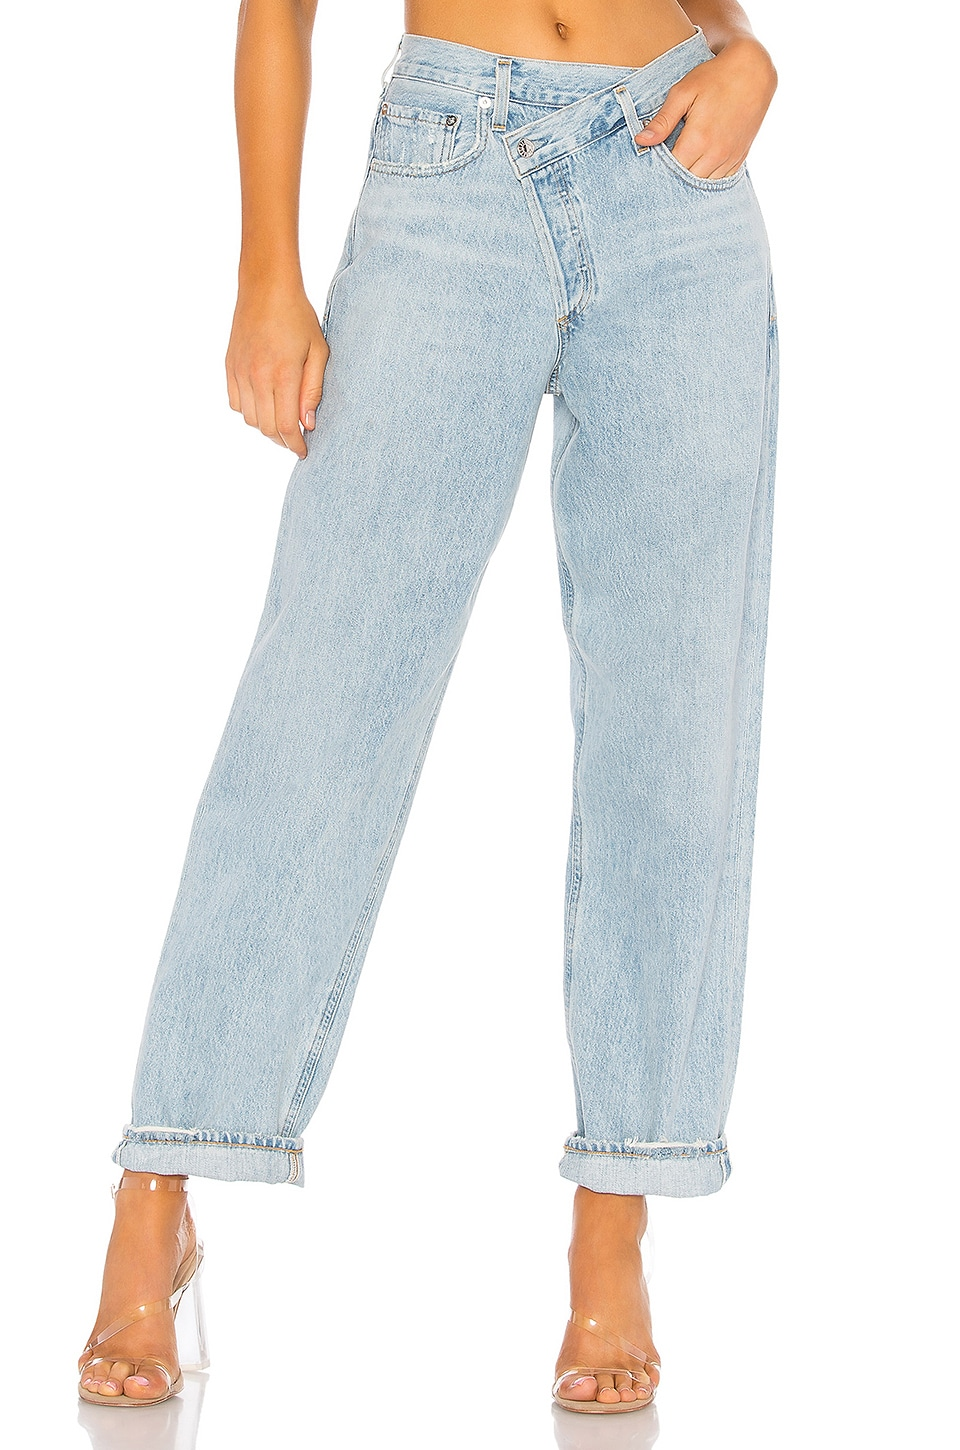 Criss Cross Upsized Jean             AGOLDE                                                                                                       CA$ 267.30 7